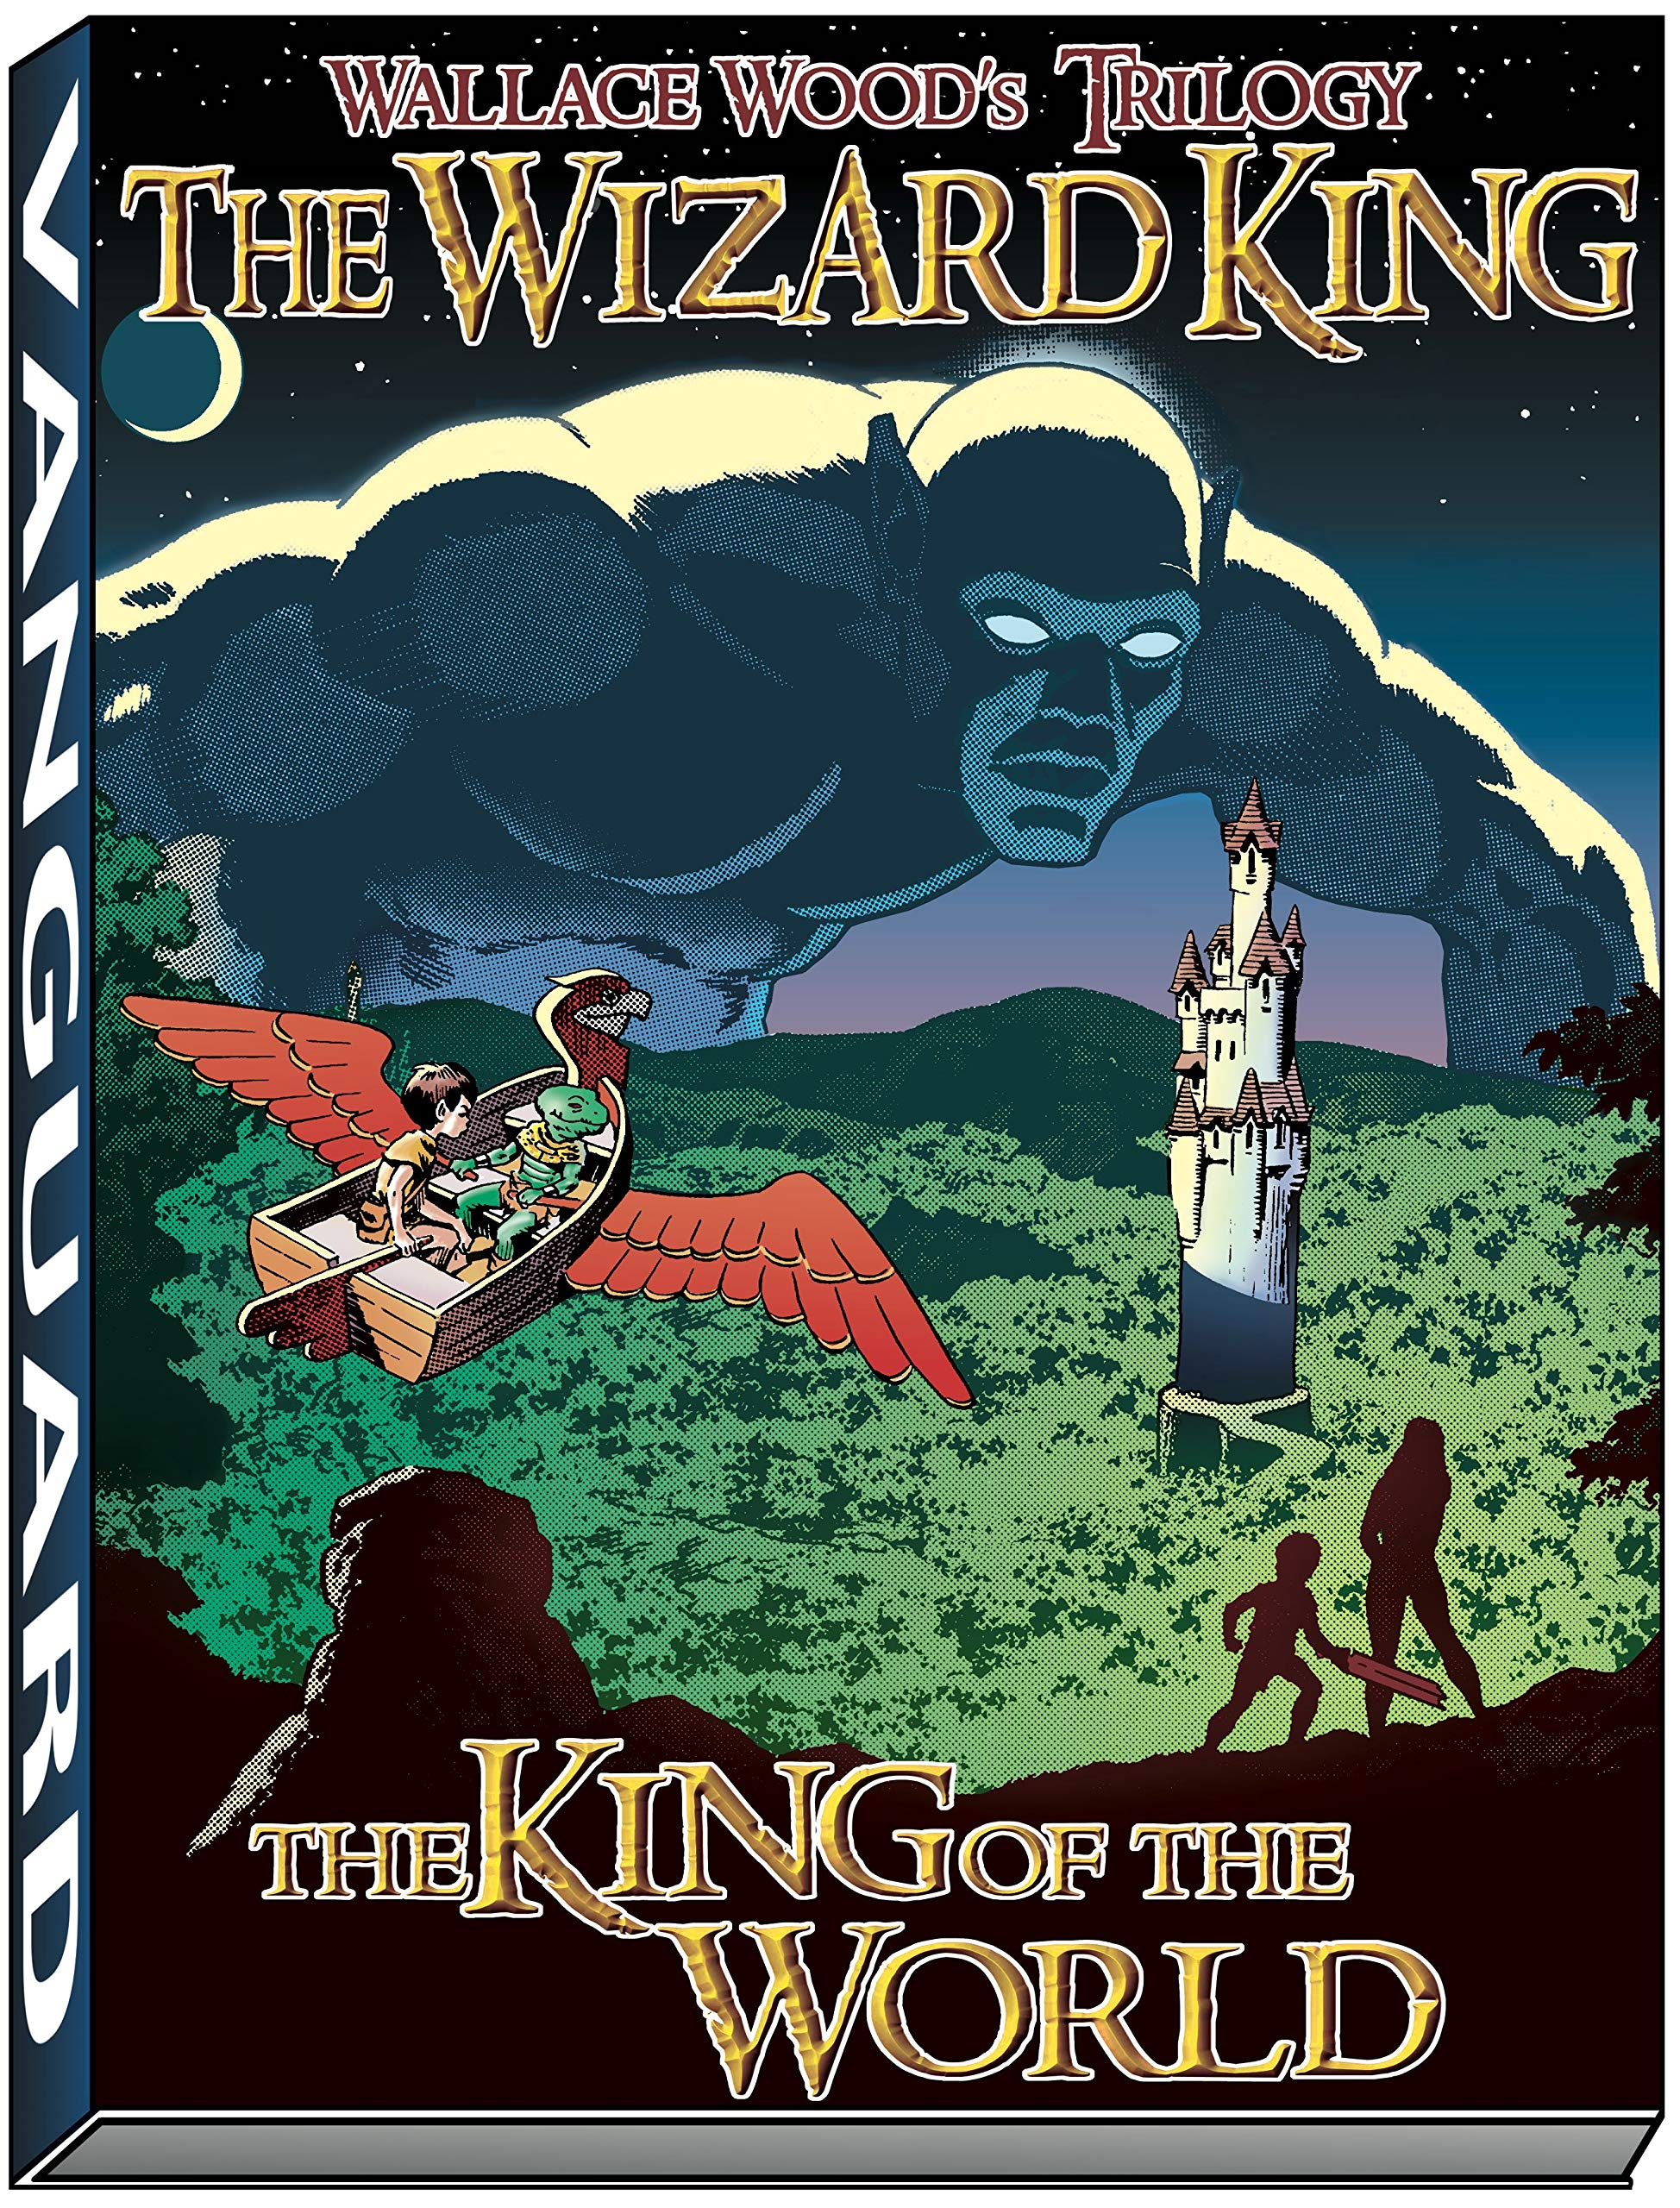 wizard king trilogy book1 king of the world wallace wood wizard king trilogy